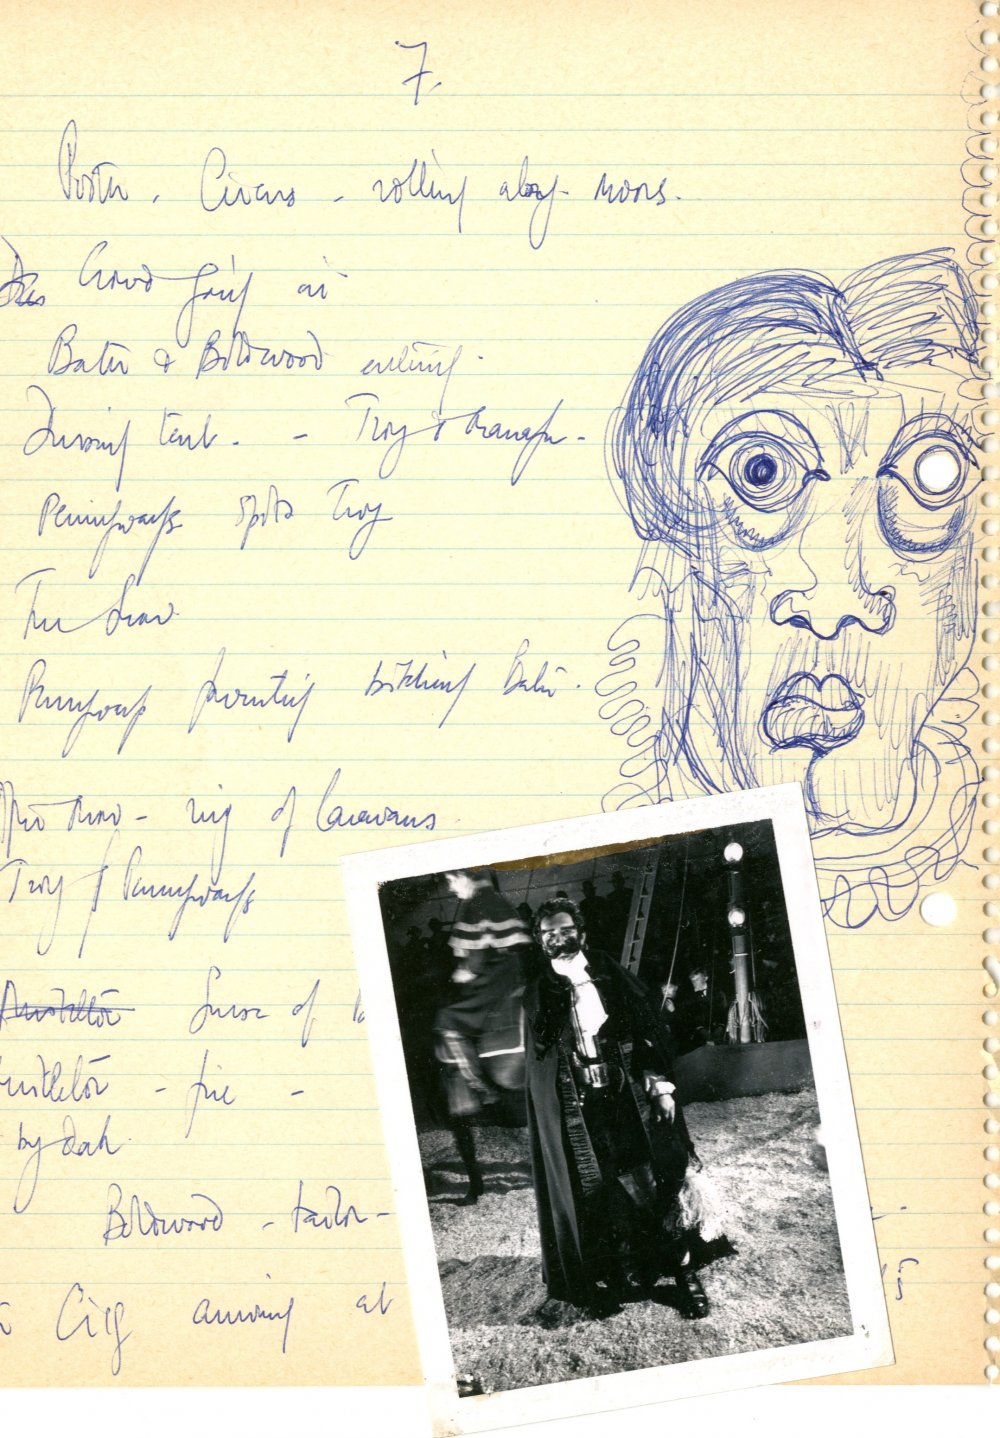 Schlesinger's handwritten and illustrated scene breakdown, alongside a continuity polaroid of Troy as Turpin